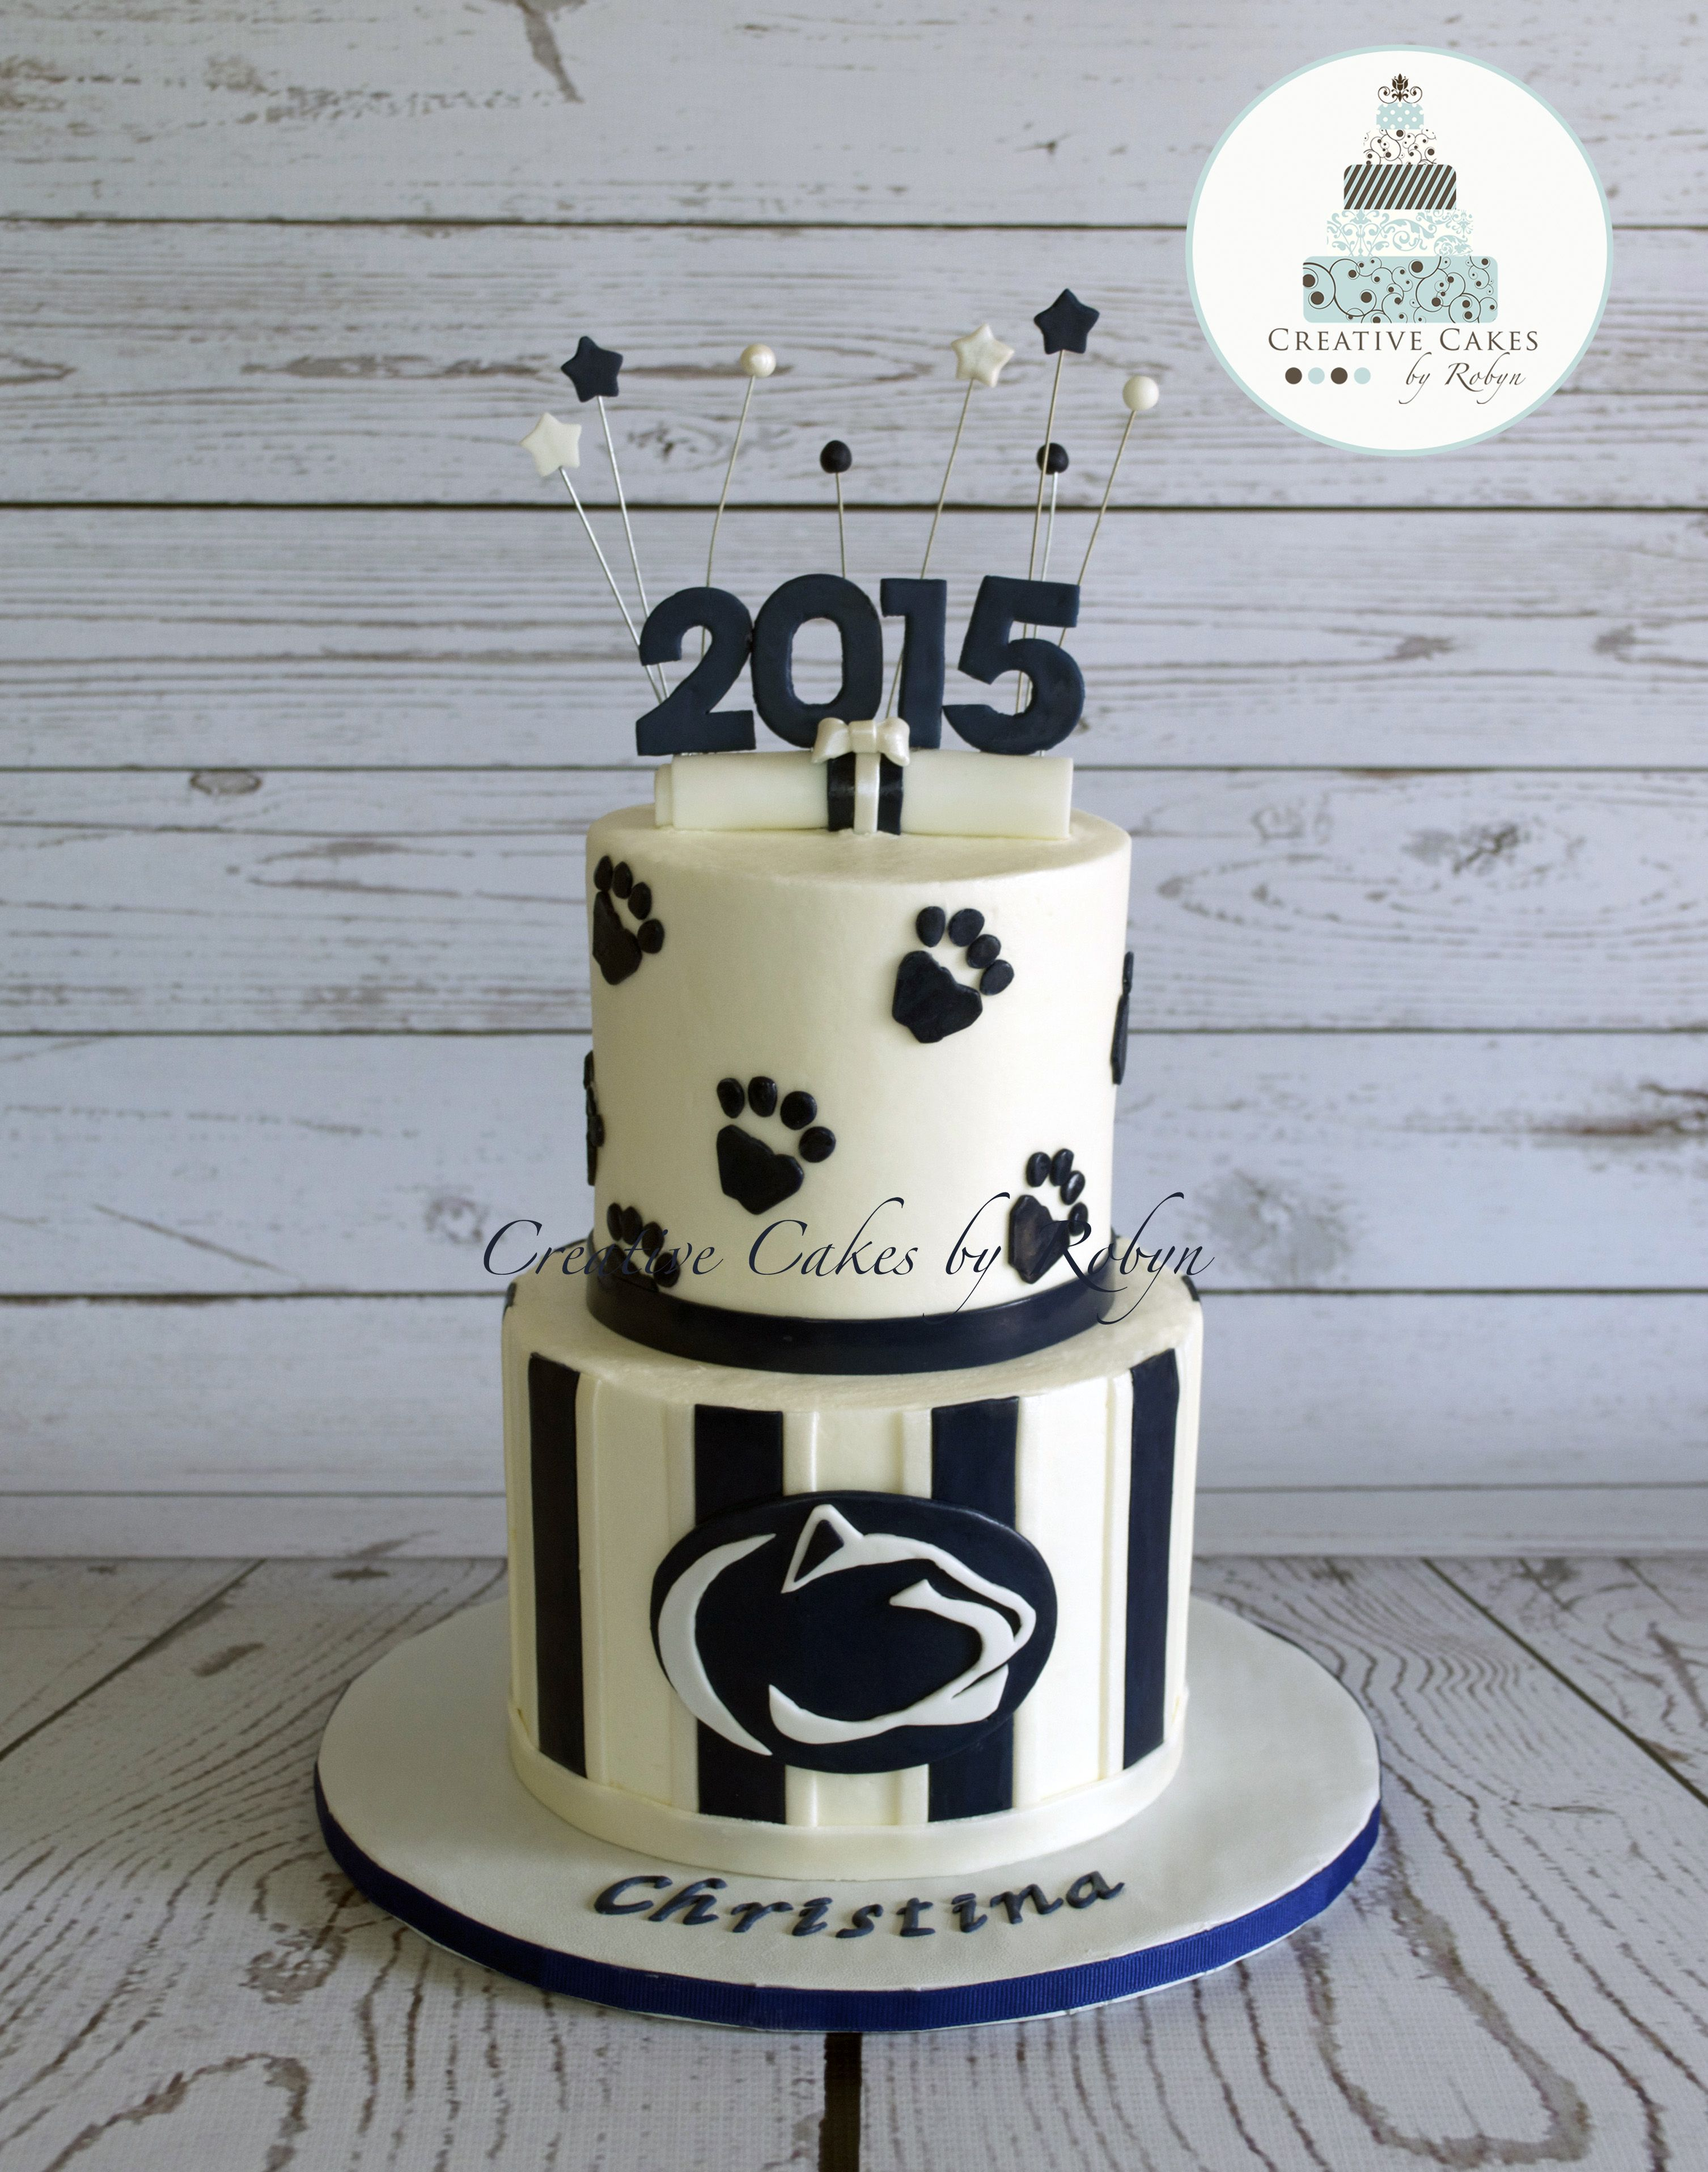 off to penn state graduation cake my cakes the o penn state graduation cake